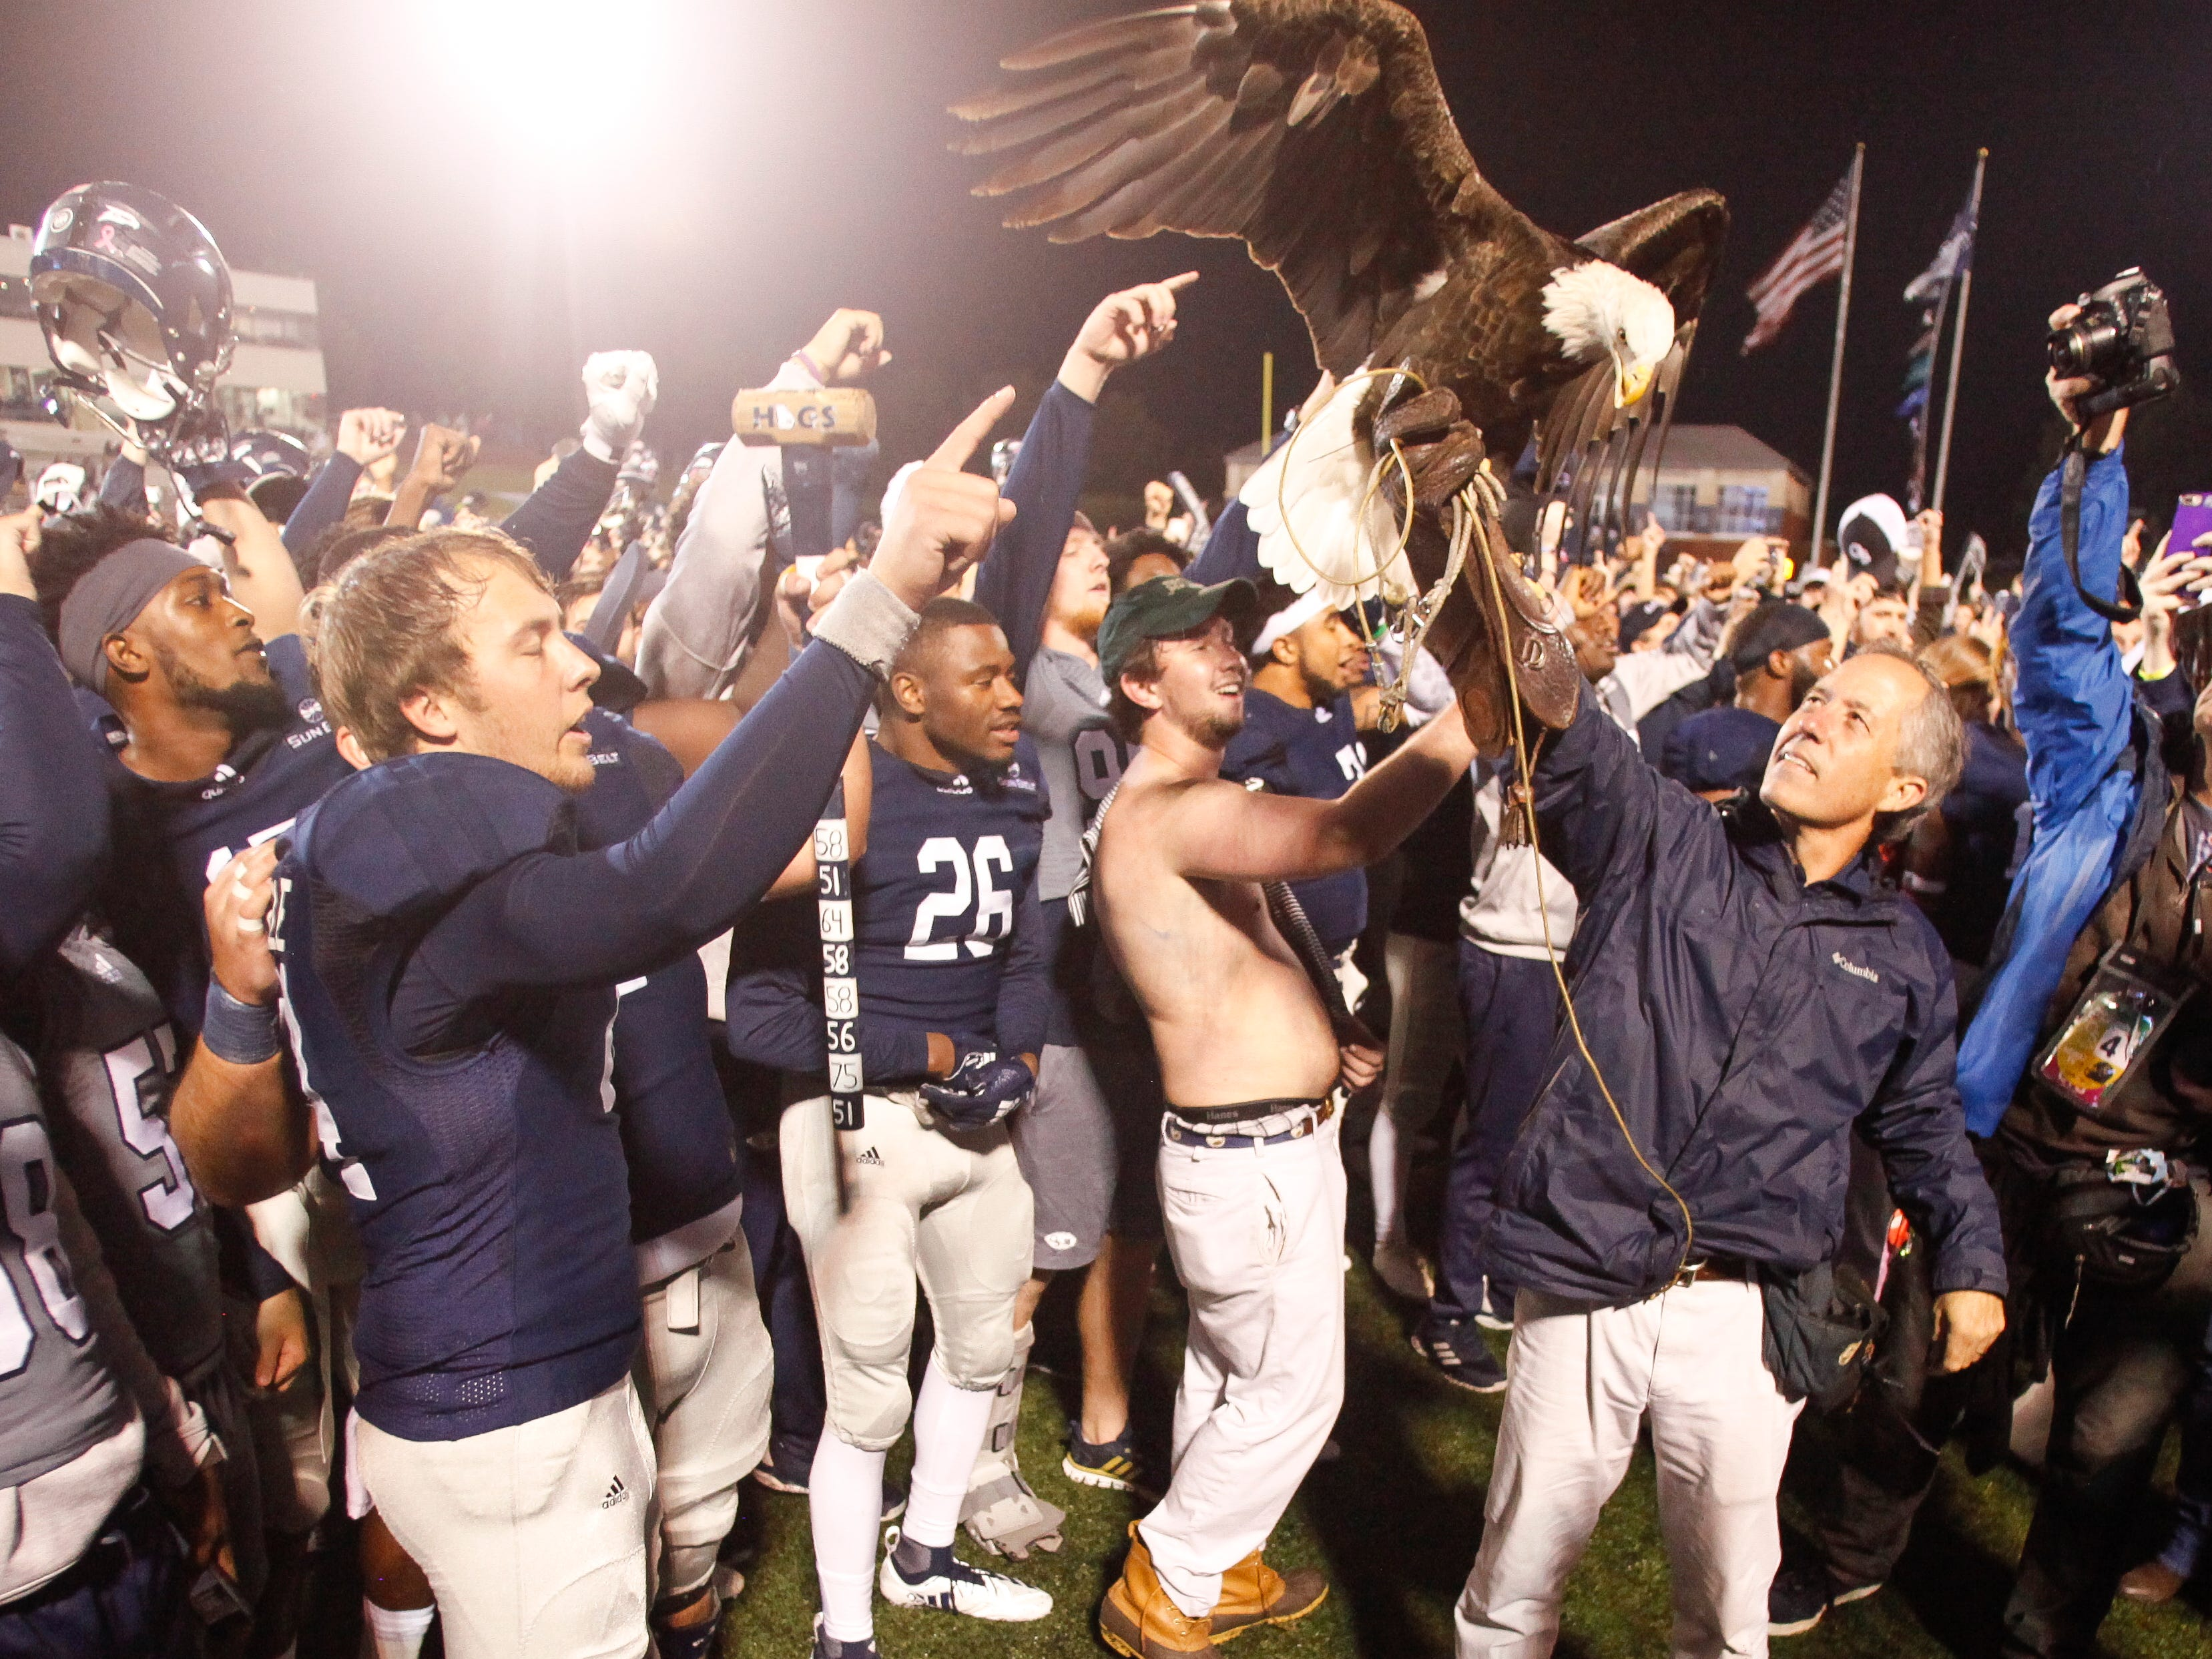 The Georgia Southern Eagles celebrate their win over Appalachian State as handler Steve Hein hoists Freedom, the team's live mascot, in Statesboro, Georgia.